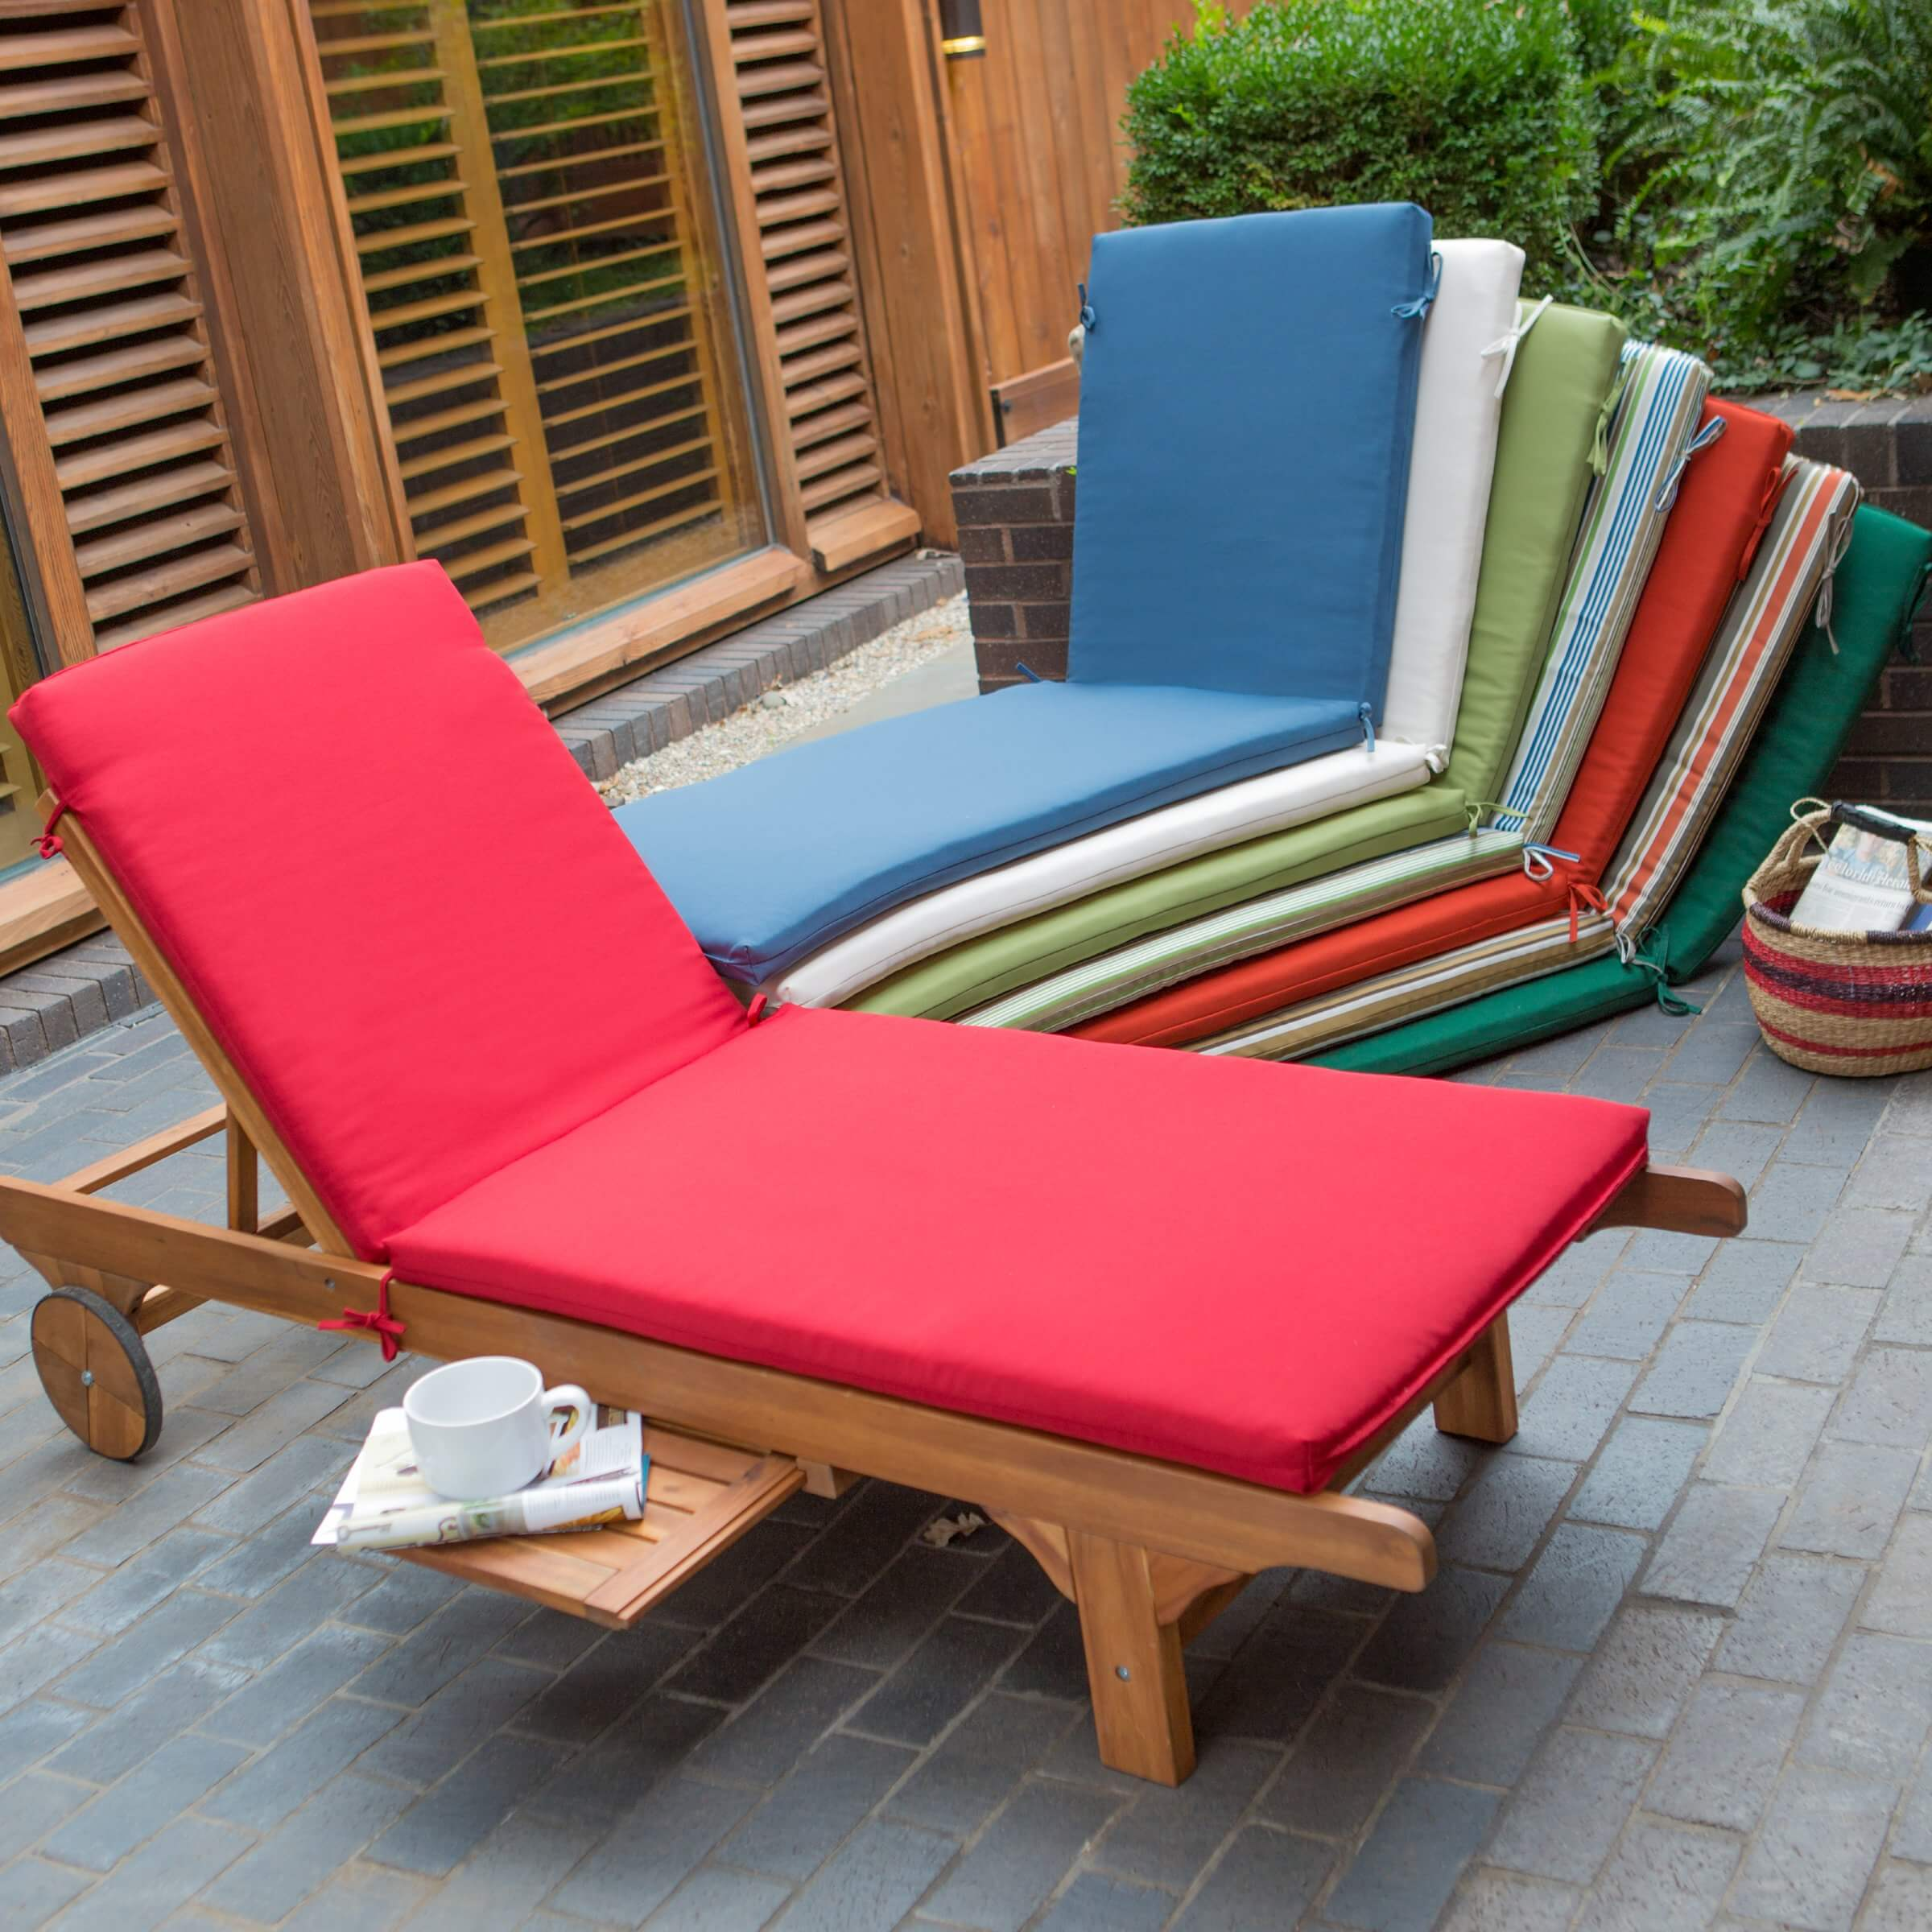 Patio ready chaise lounges tend to be built on a wood or wicker frame, with removable cushioning for storage when the weather doesn't comply. They often have adjustable back heights and may include features like drink treys or cup holders.